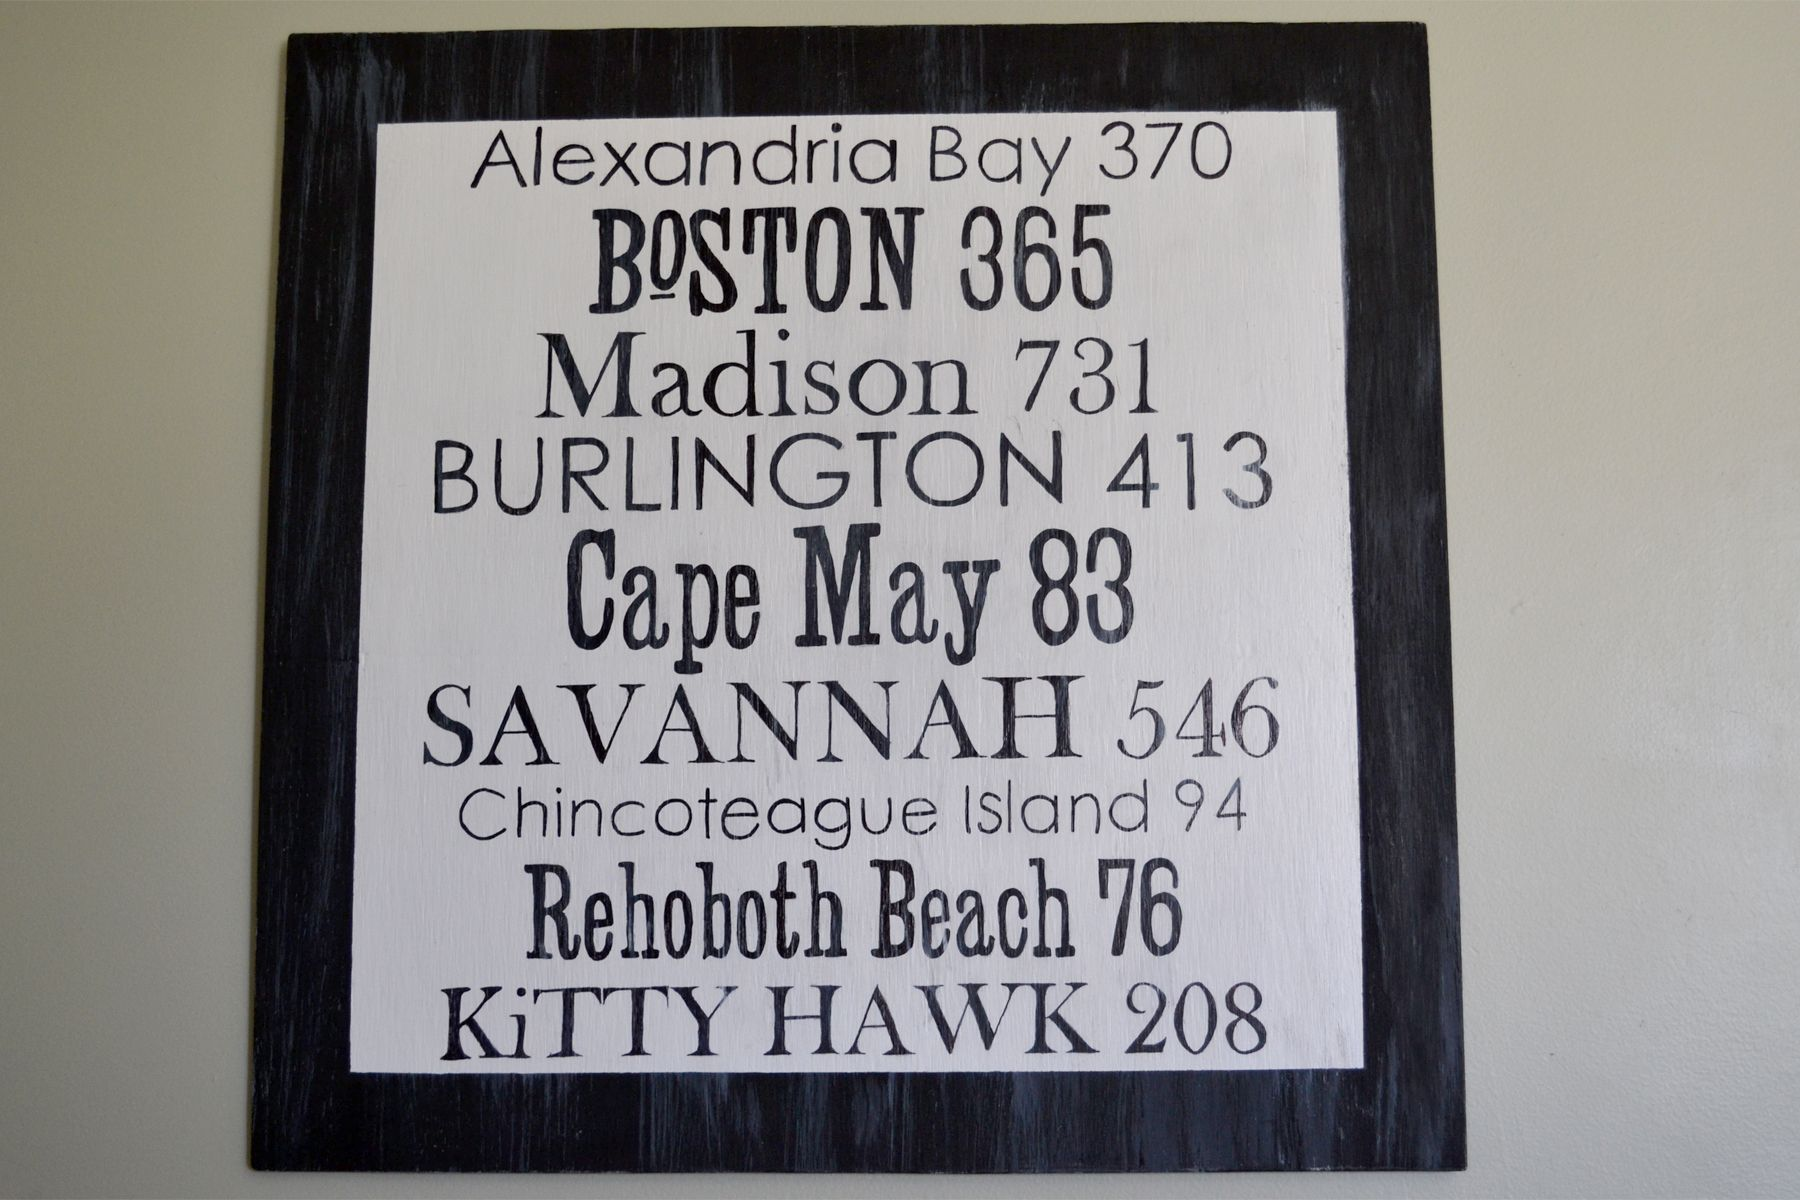 """I finally created my own """"Destinations"""" sign! There is a very transparent whitewash over some areas and I'm happy overall with the way it turned out. Most importantly, it is meaningful to our family. #wordsbydesign #handpainted #woodsigns www.wordsxdesign.com"""